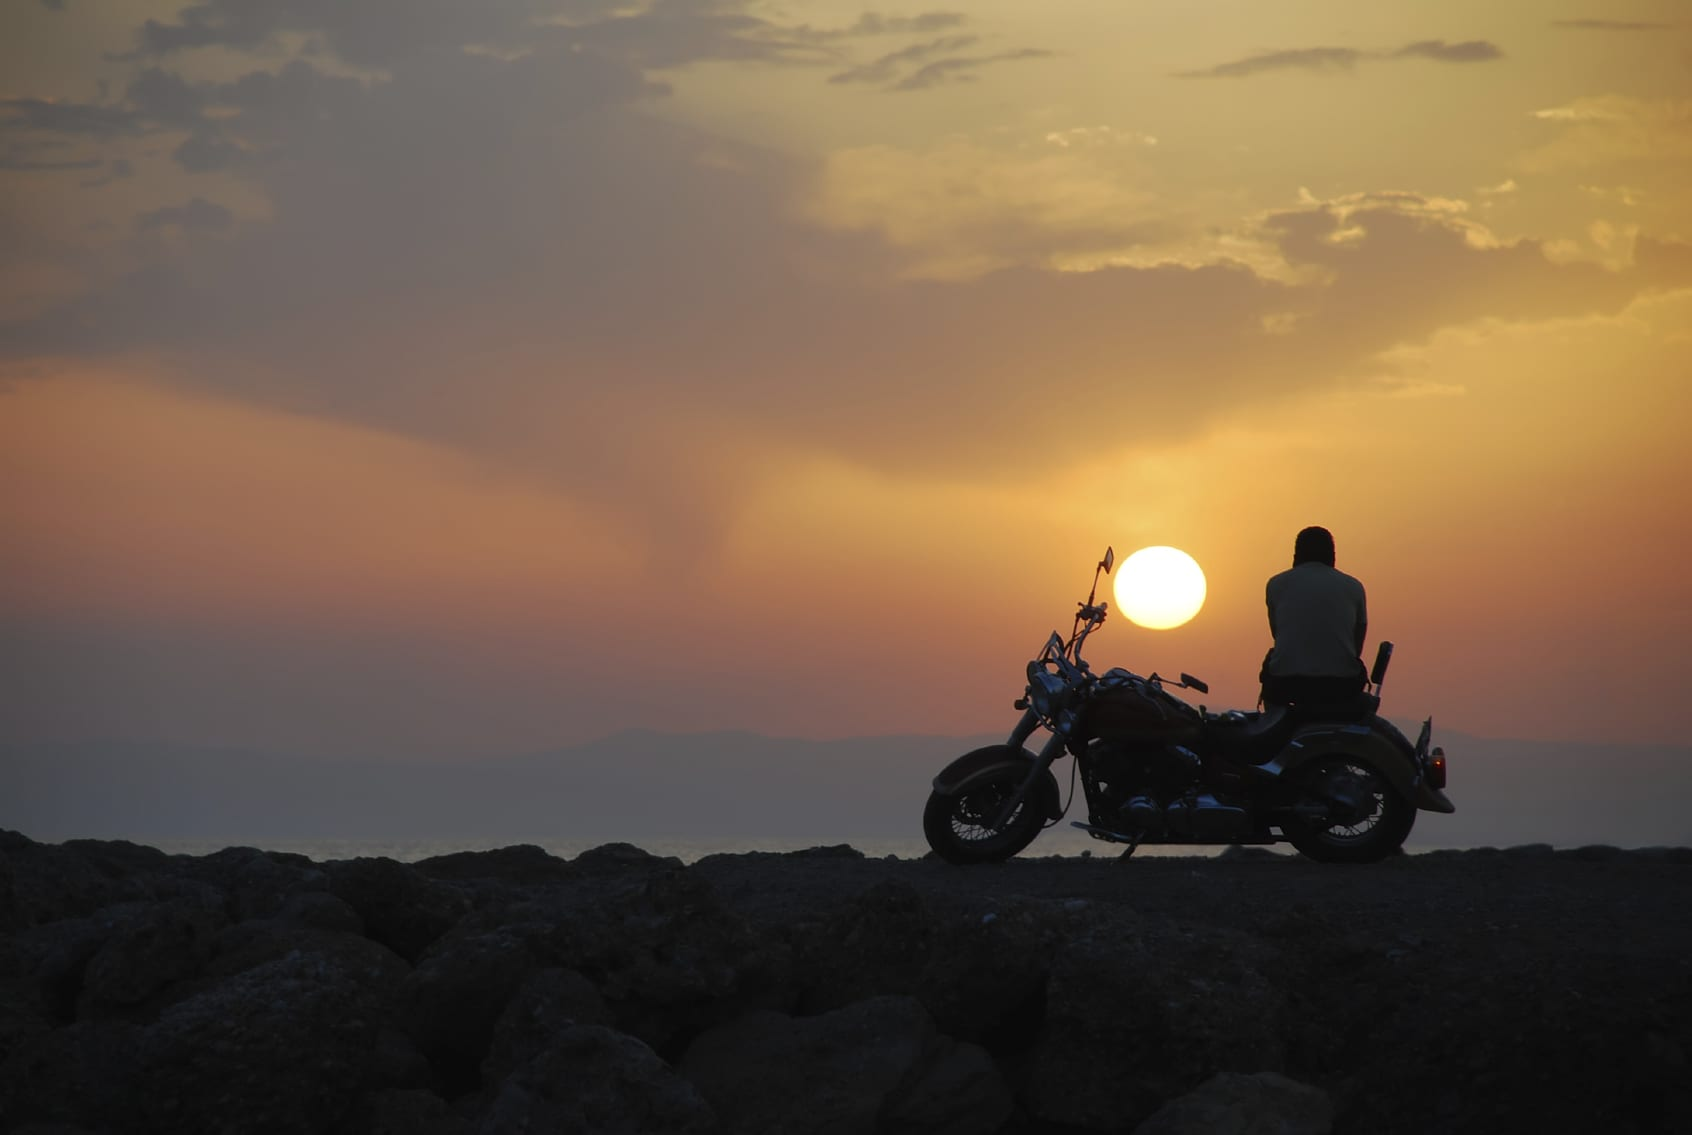 Motorcyclist Viewing Sunset While Sitting On Parked Motorcycle